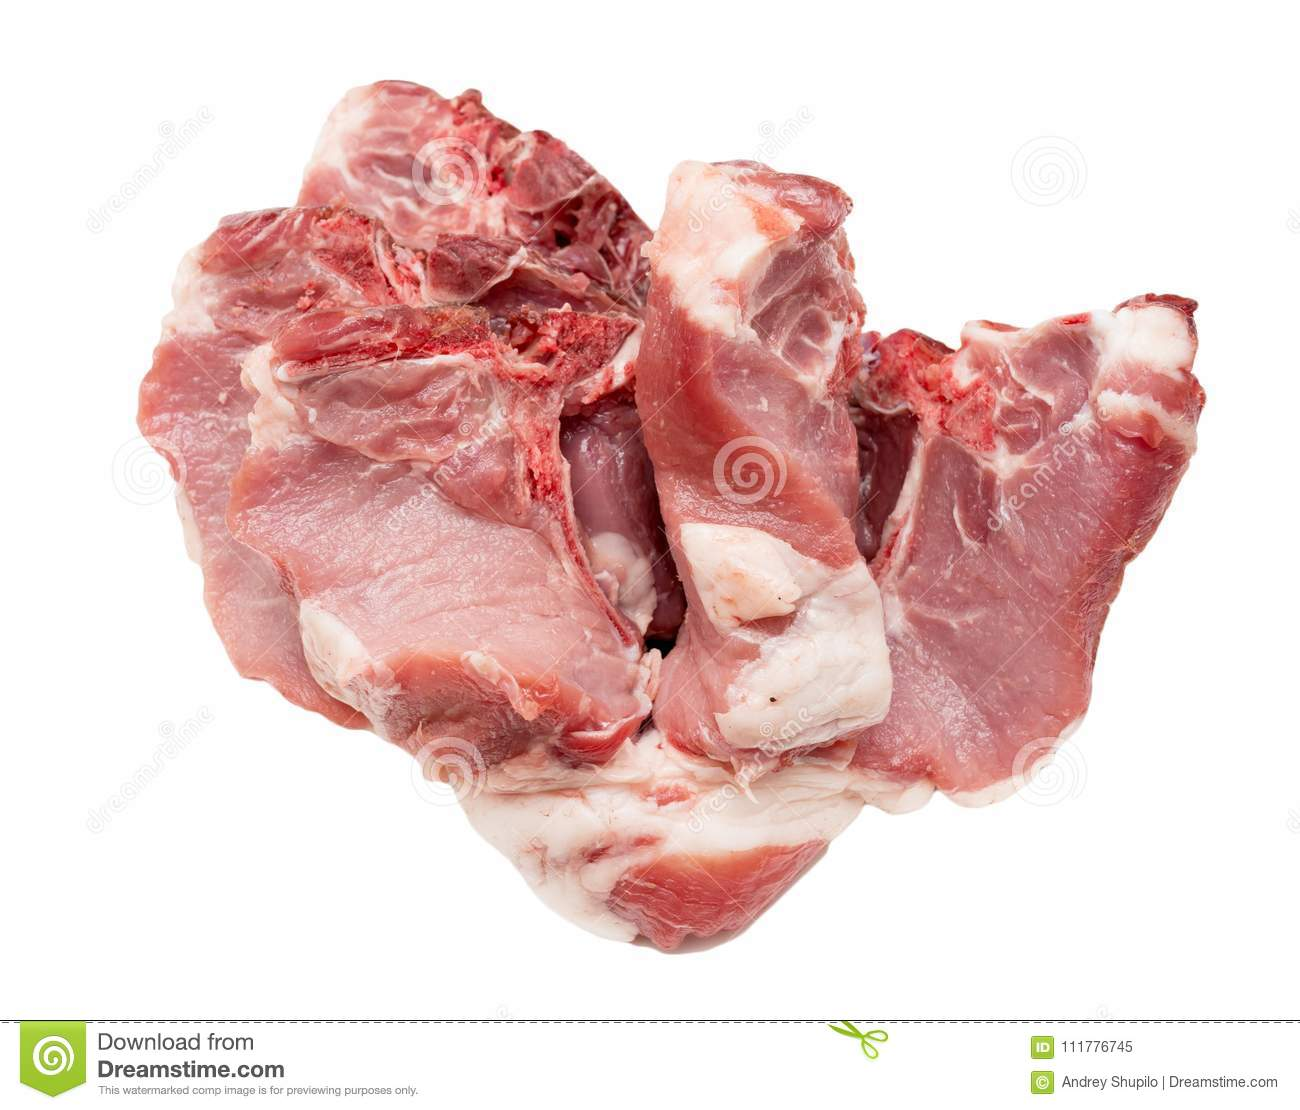 Pork meat on a white background